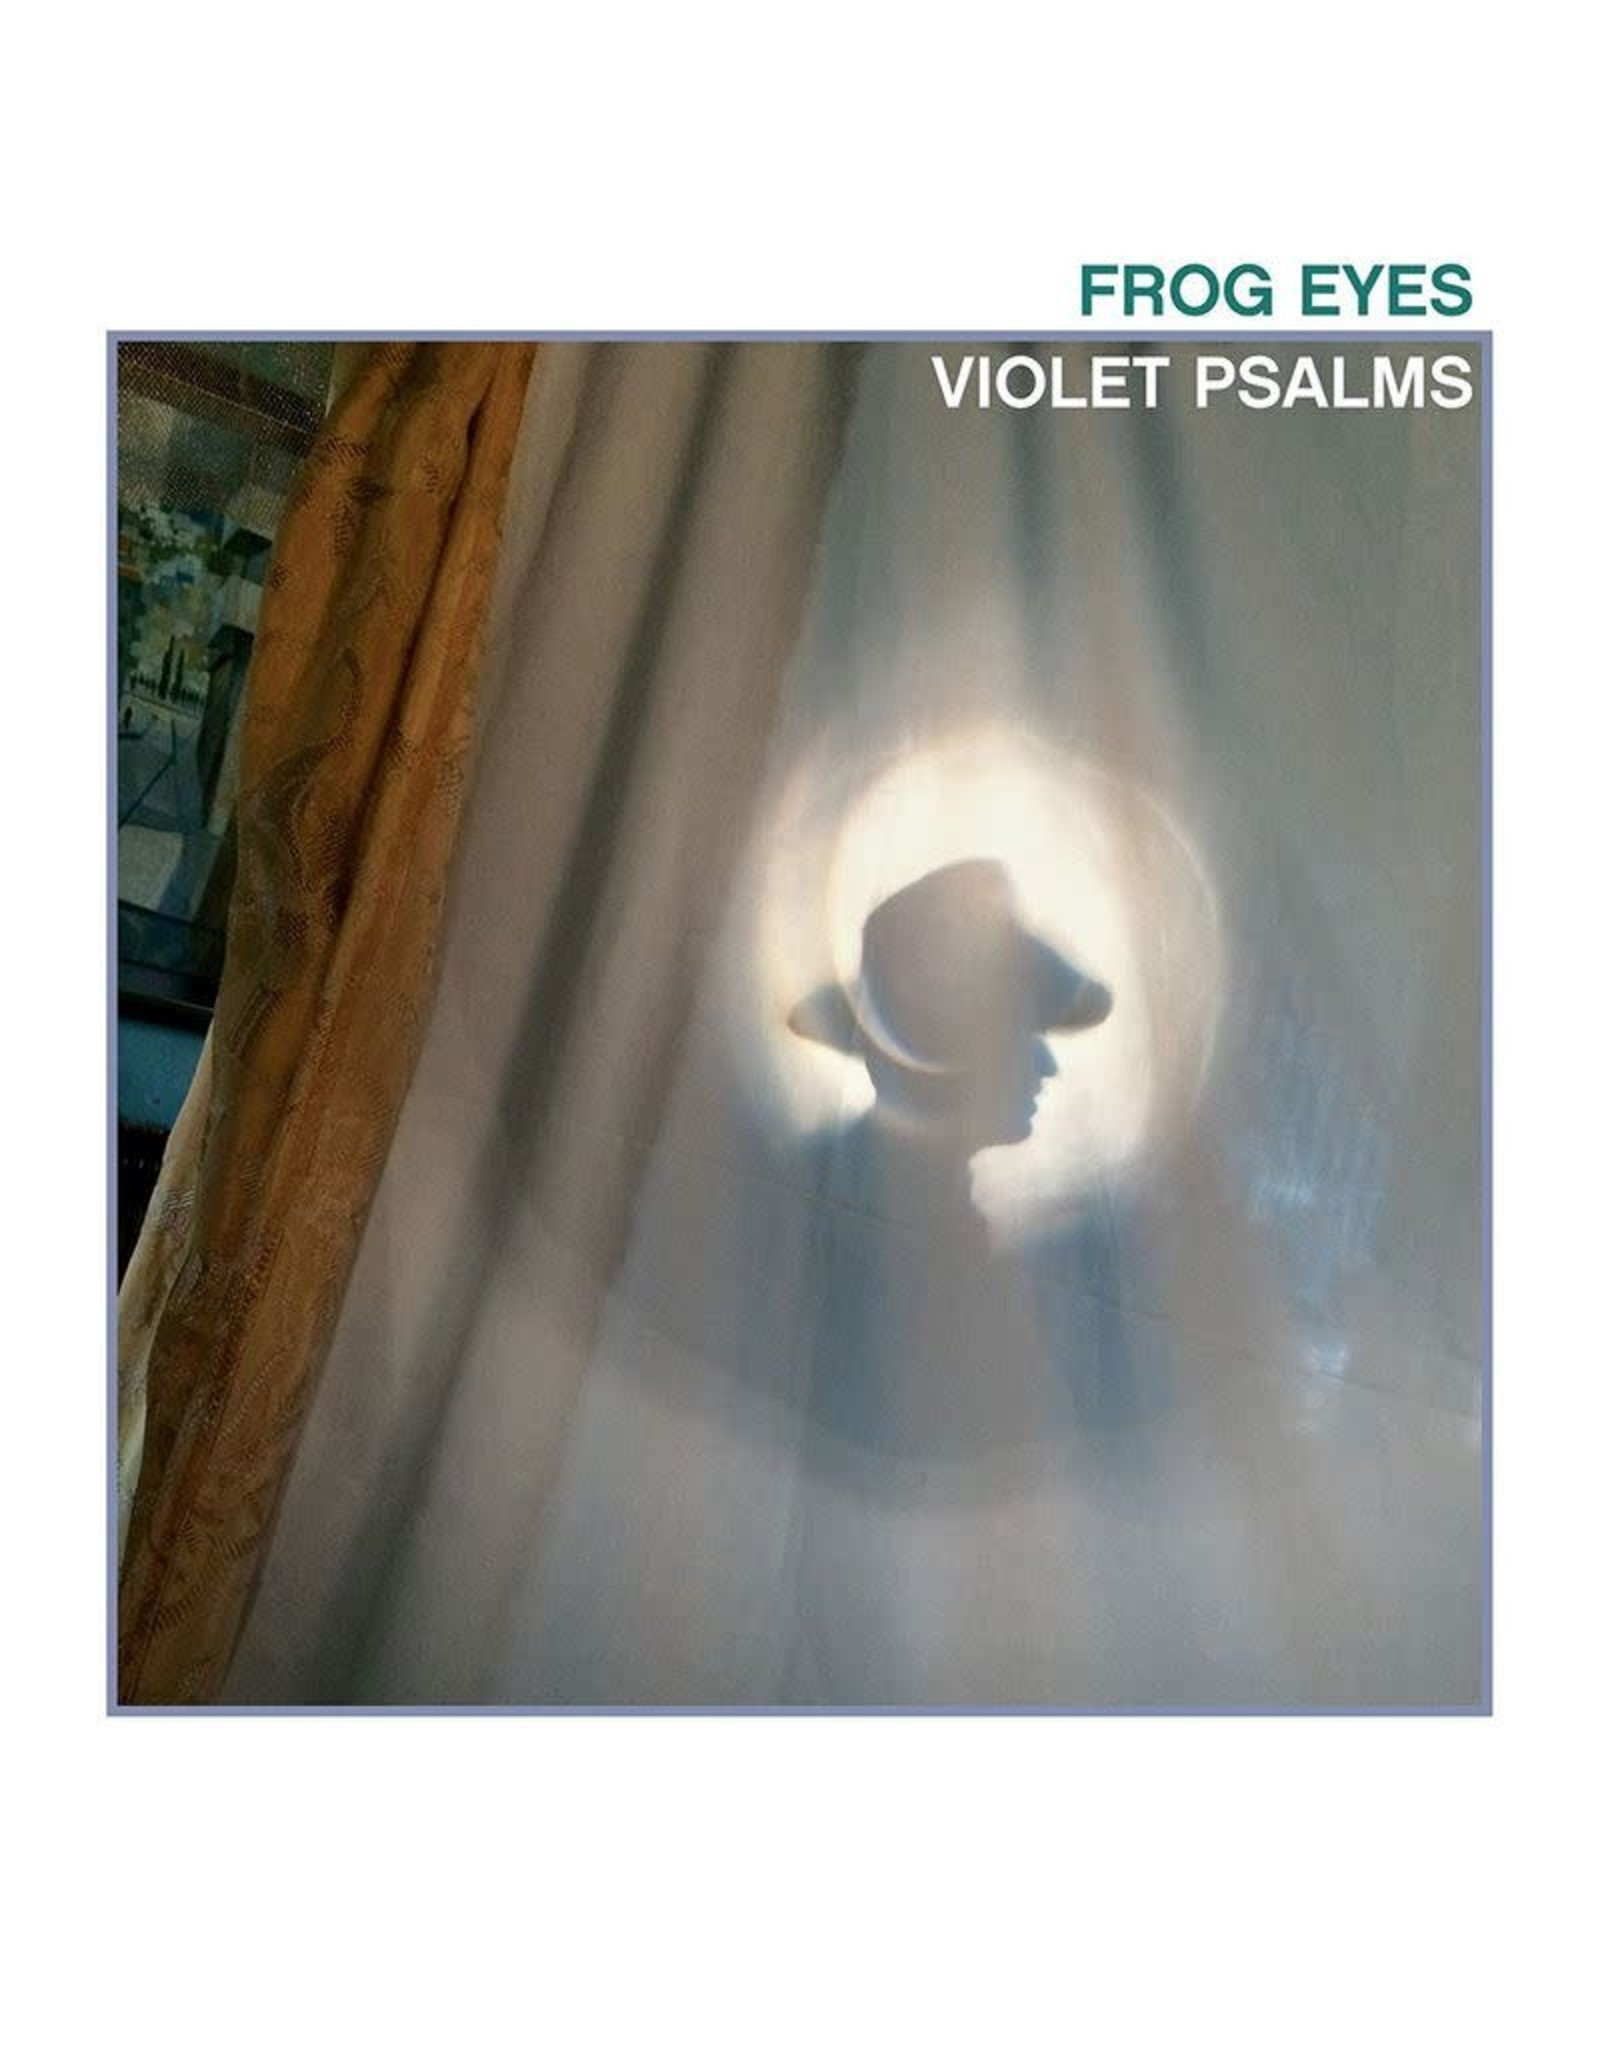 Frog Eyes - Violet Psalms LP